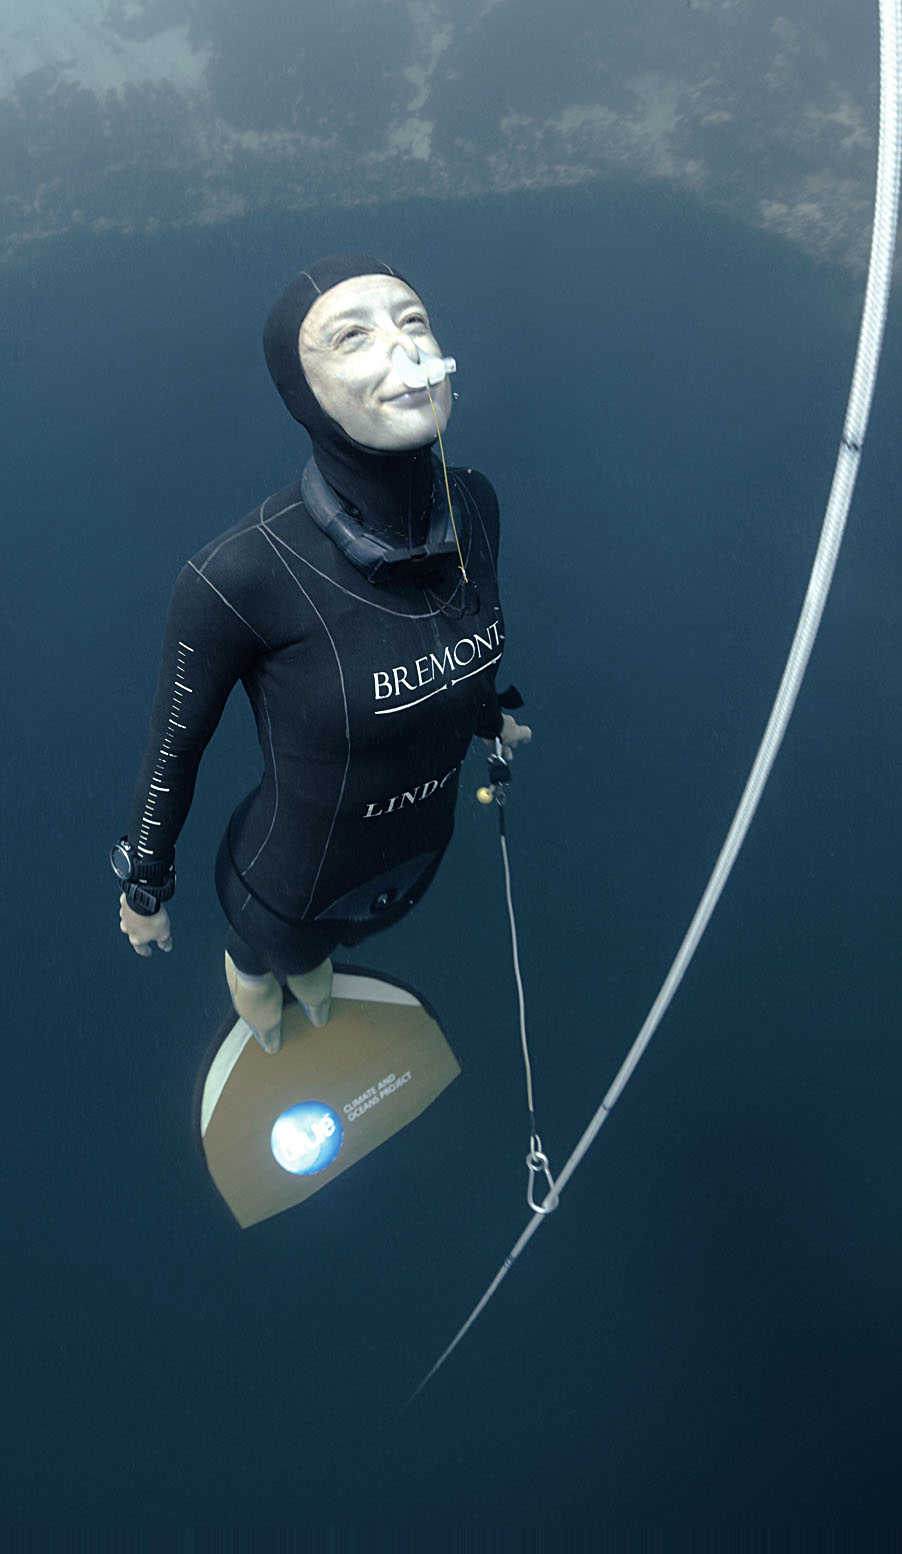 dyd-freediving-competitive-ascent.jpg